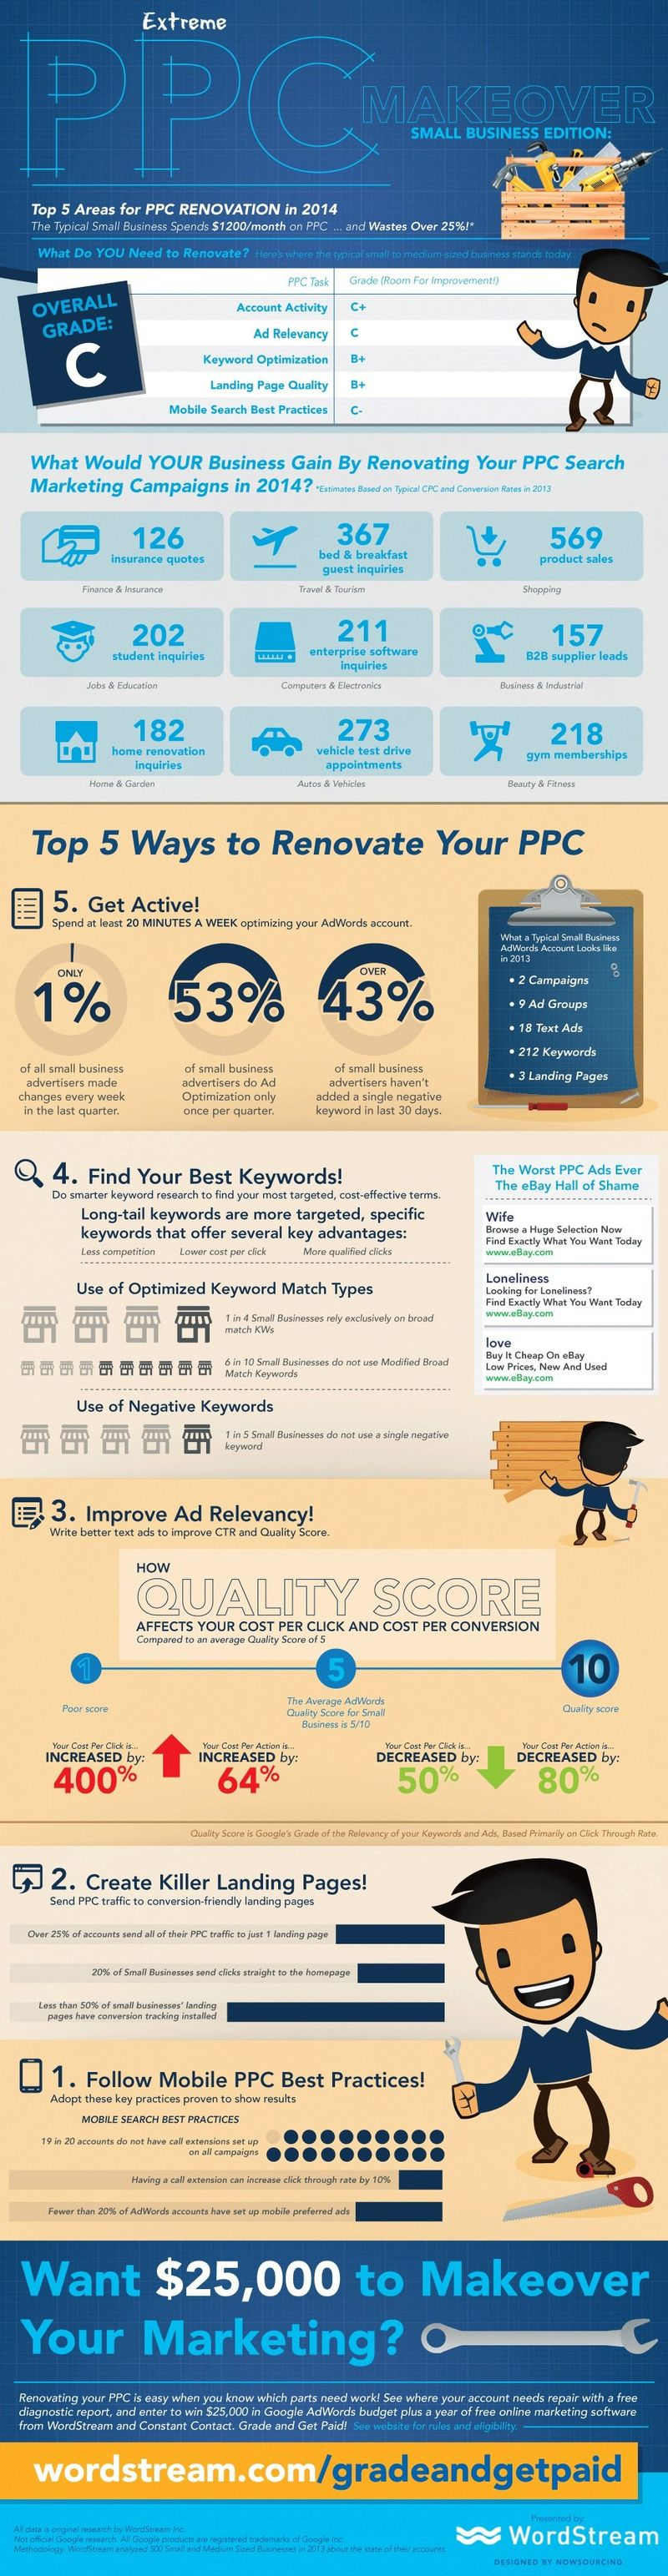 Adwords and PPC optimization